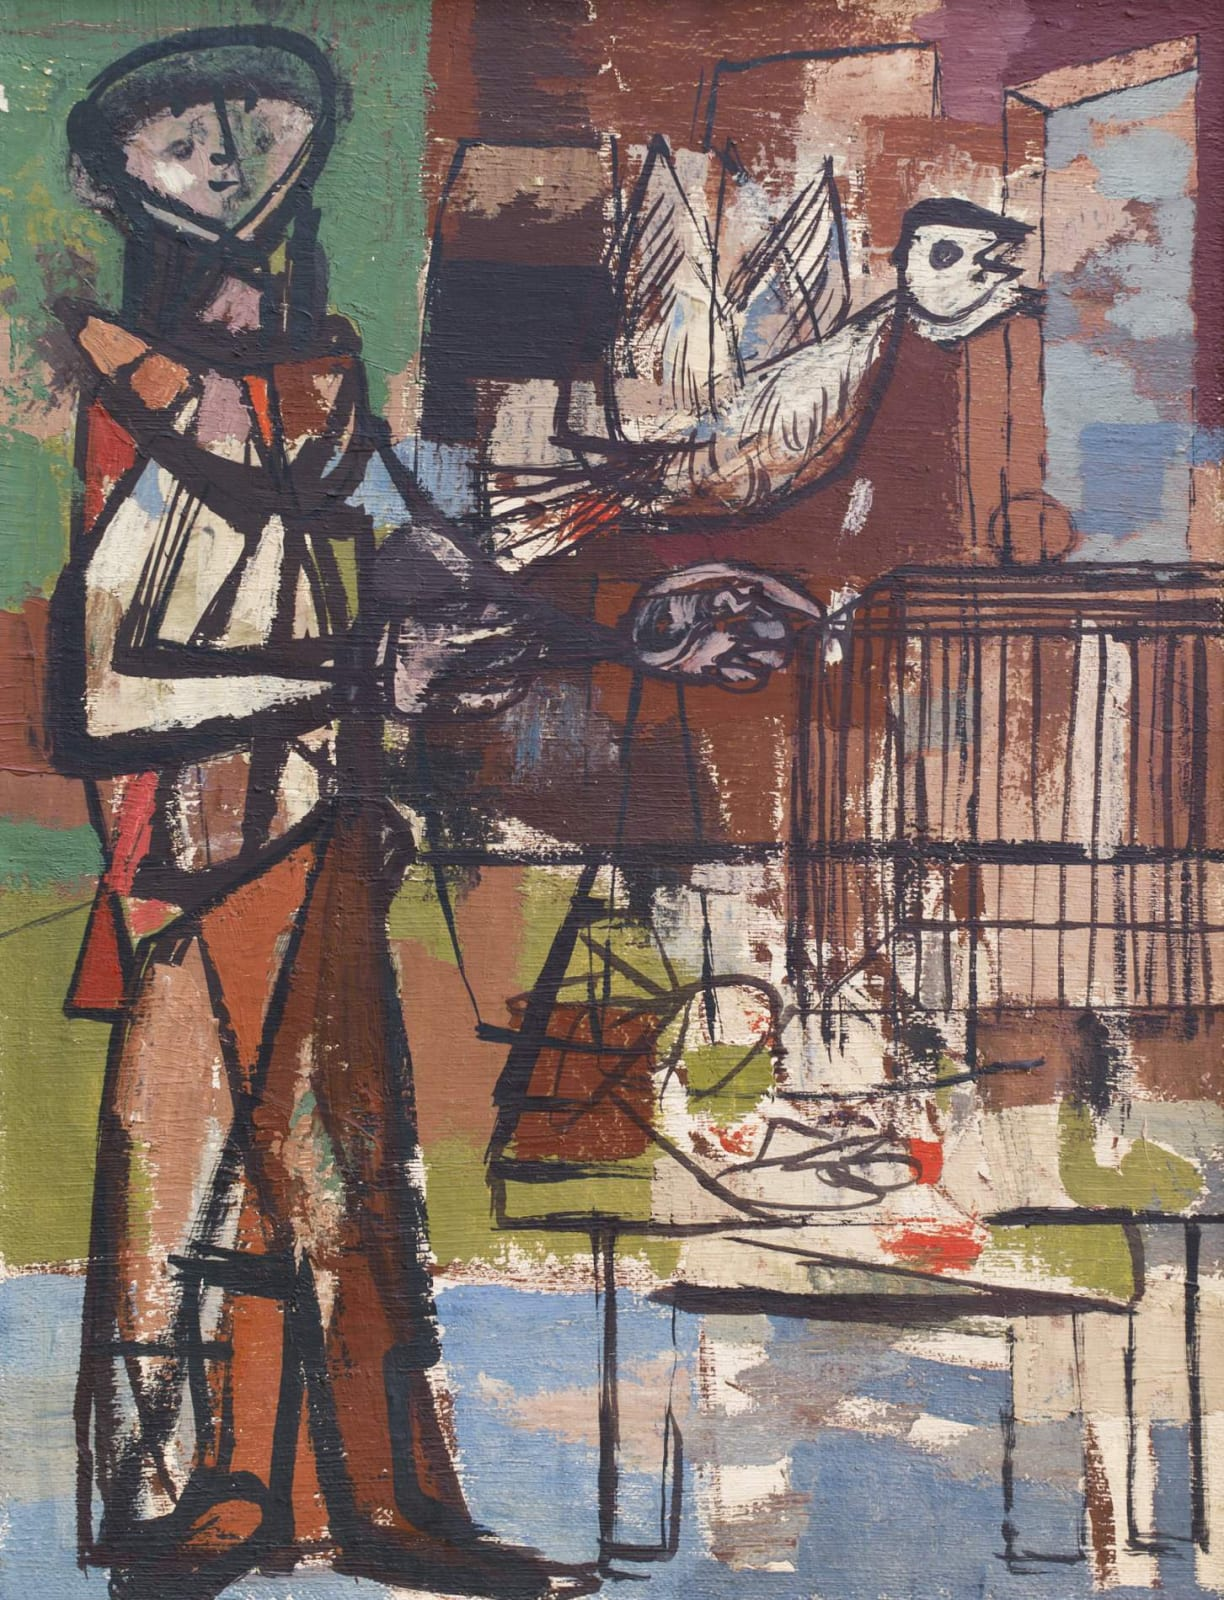 Jankel Adler (1895-1949) Bird and Cage c. 1948 Oil on canvas 91 x 69.5 cm Goldmark Gallery / Aukin Collection To see and discover more about this artist click here